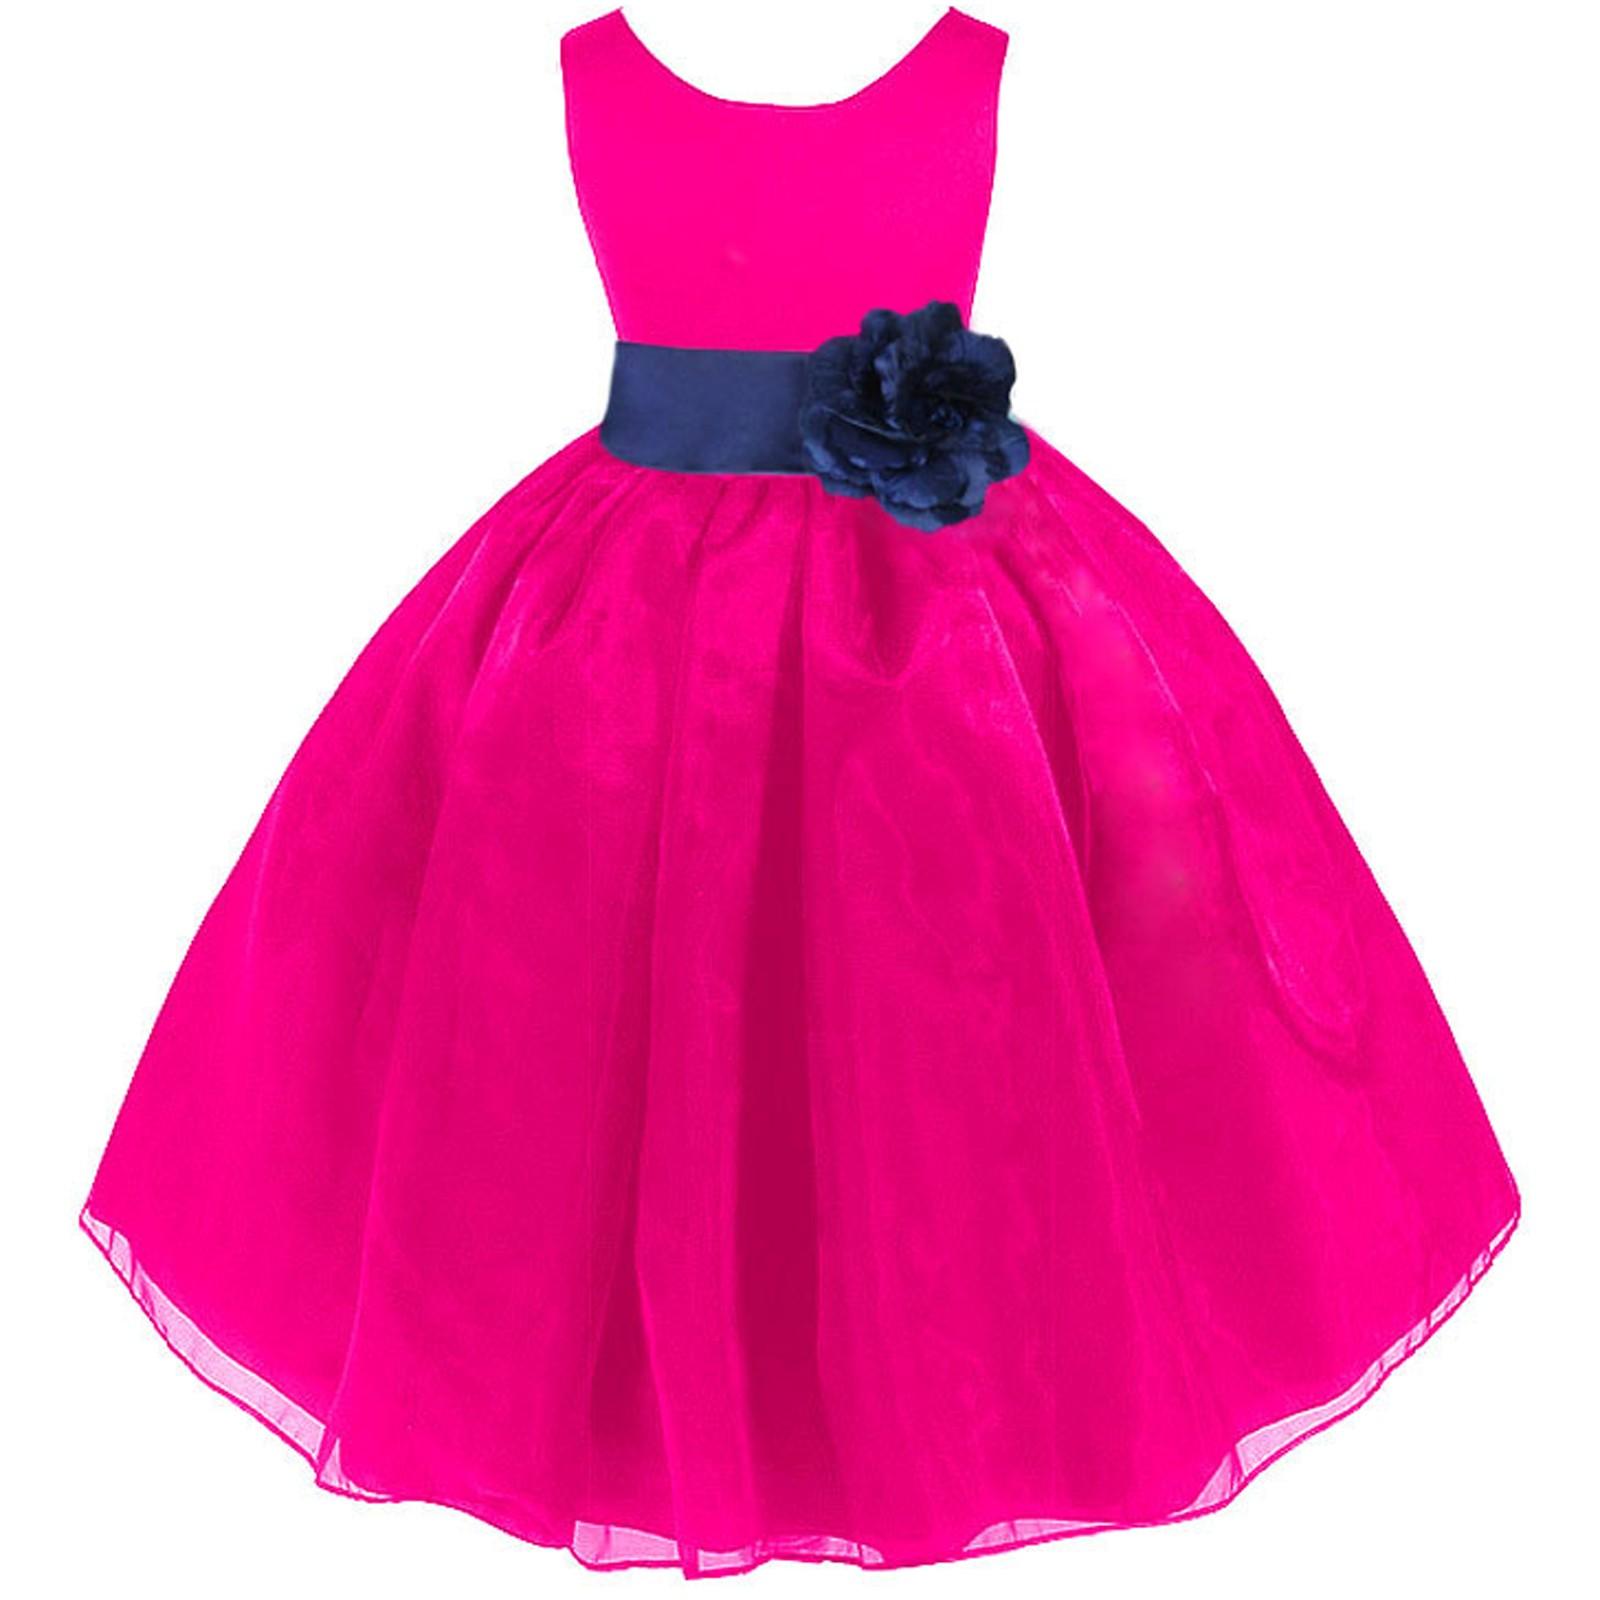 528c41181c01 Fuchsia Navy Satin Bodice Organza Skirt Flower Girl Dress 841T ...